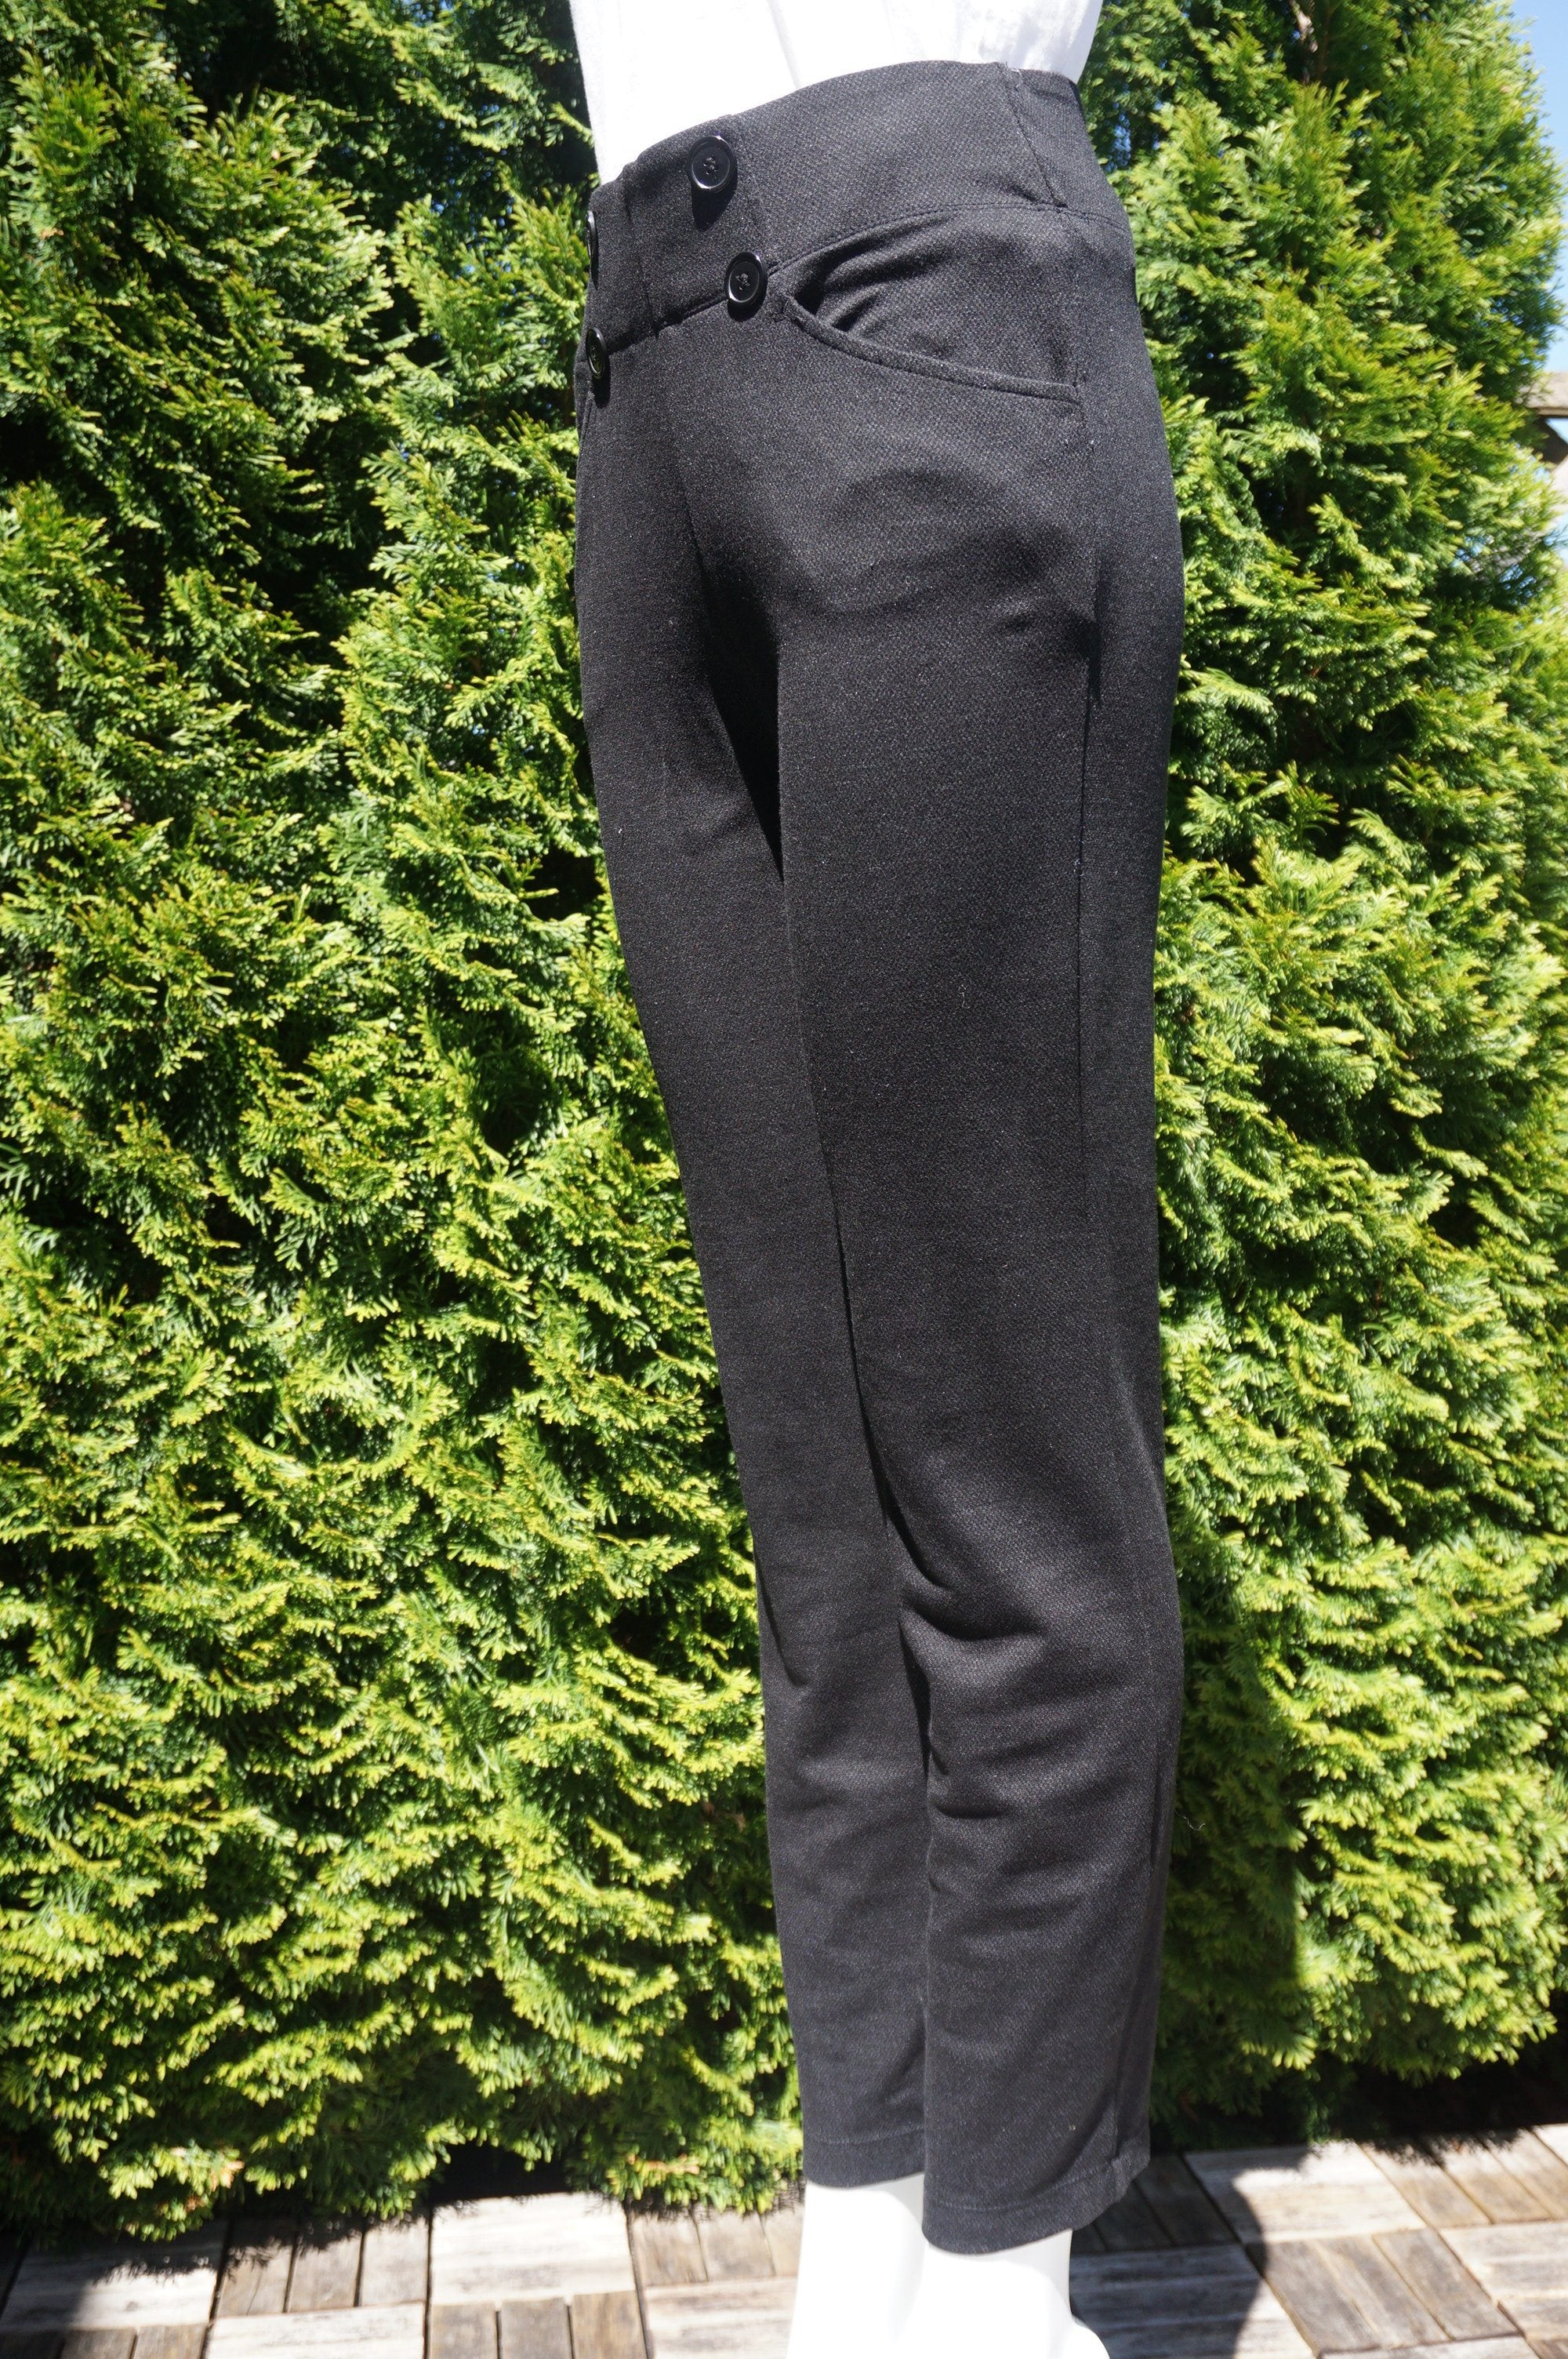 Max Studio Comfy Stretchy Pants with Pockets, Comfortable and versatile pants, perfect for working from home., Black, 50% Rayon, 31% Nylon, 14% Polyester, 5% Spandex, women's Pants, women's Black Pants, Max Studio women's Pants, comfy pants, comfortable work pants, black skinny pants, skinny pants